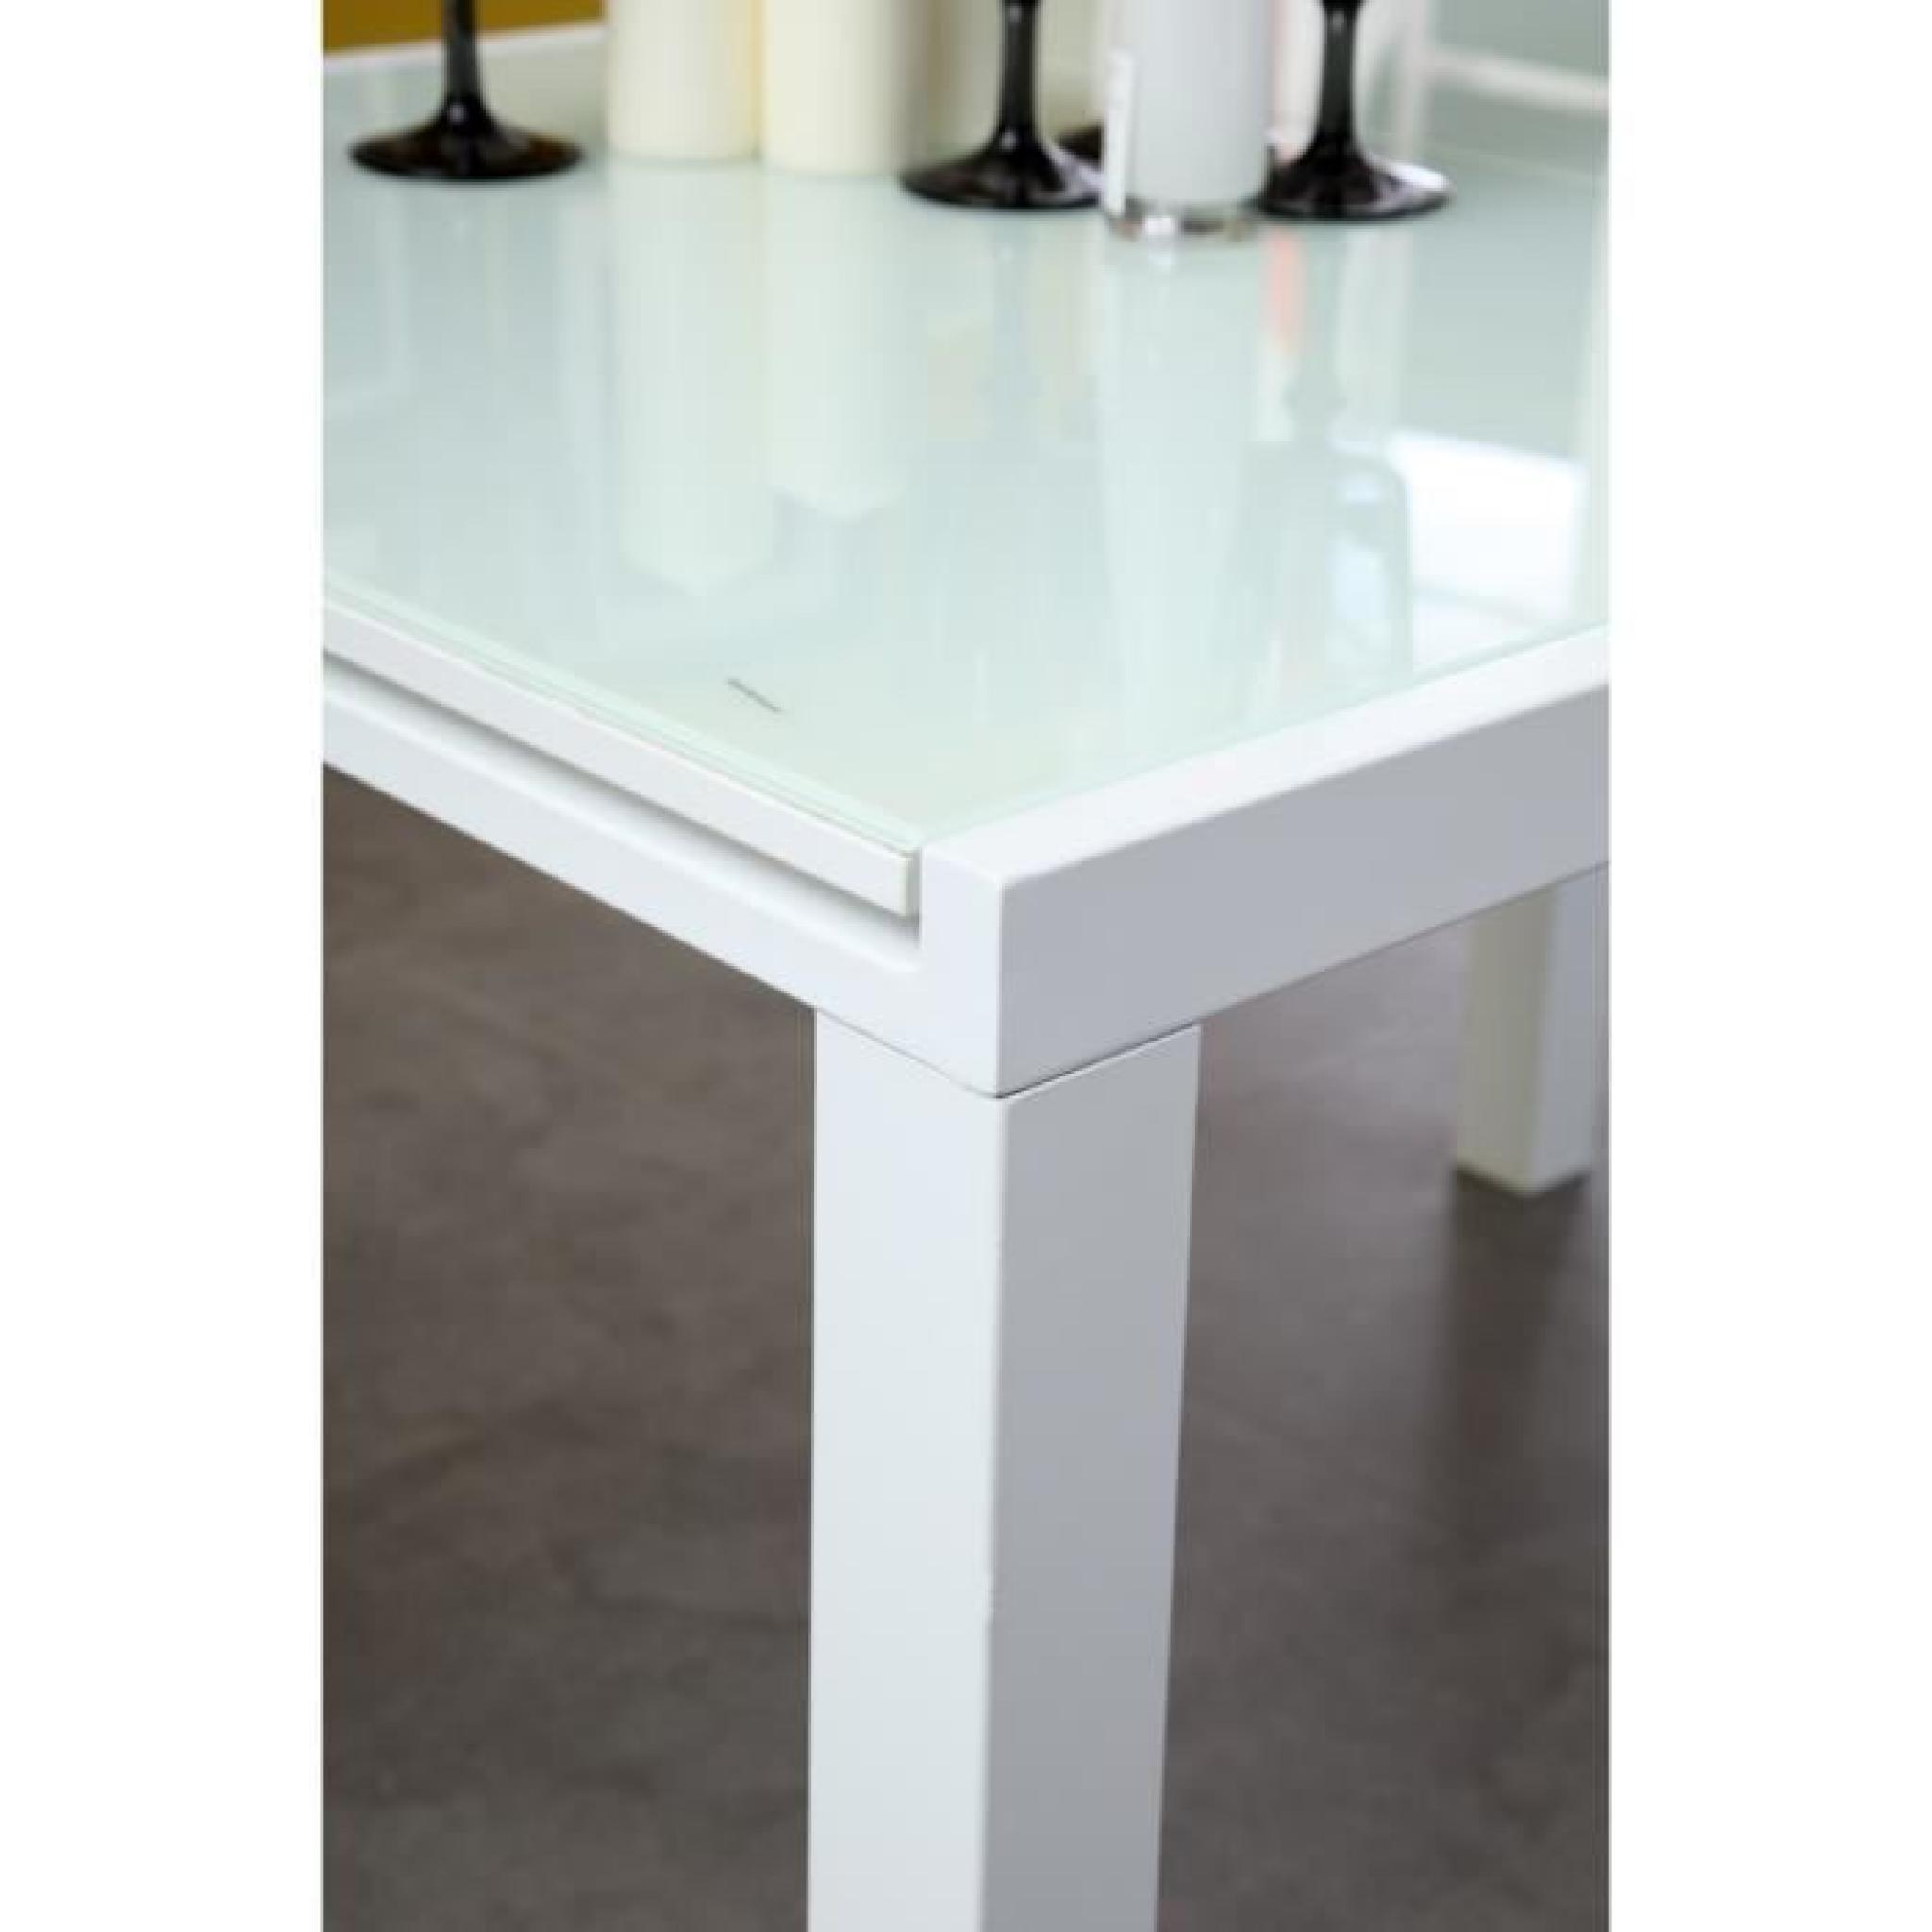 Table extensible blanc maison design for Table extensible noir et blanc